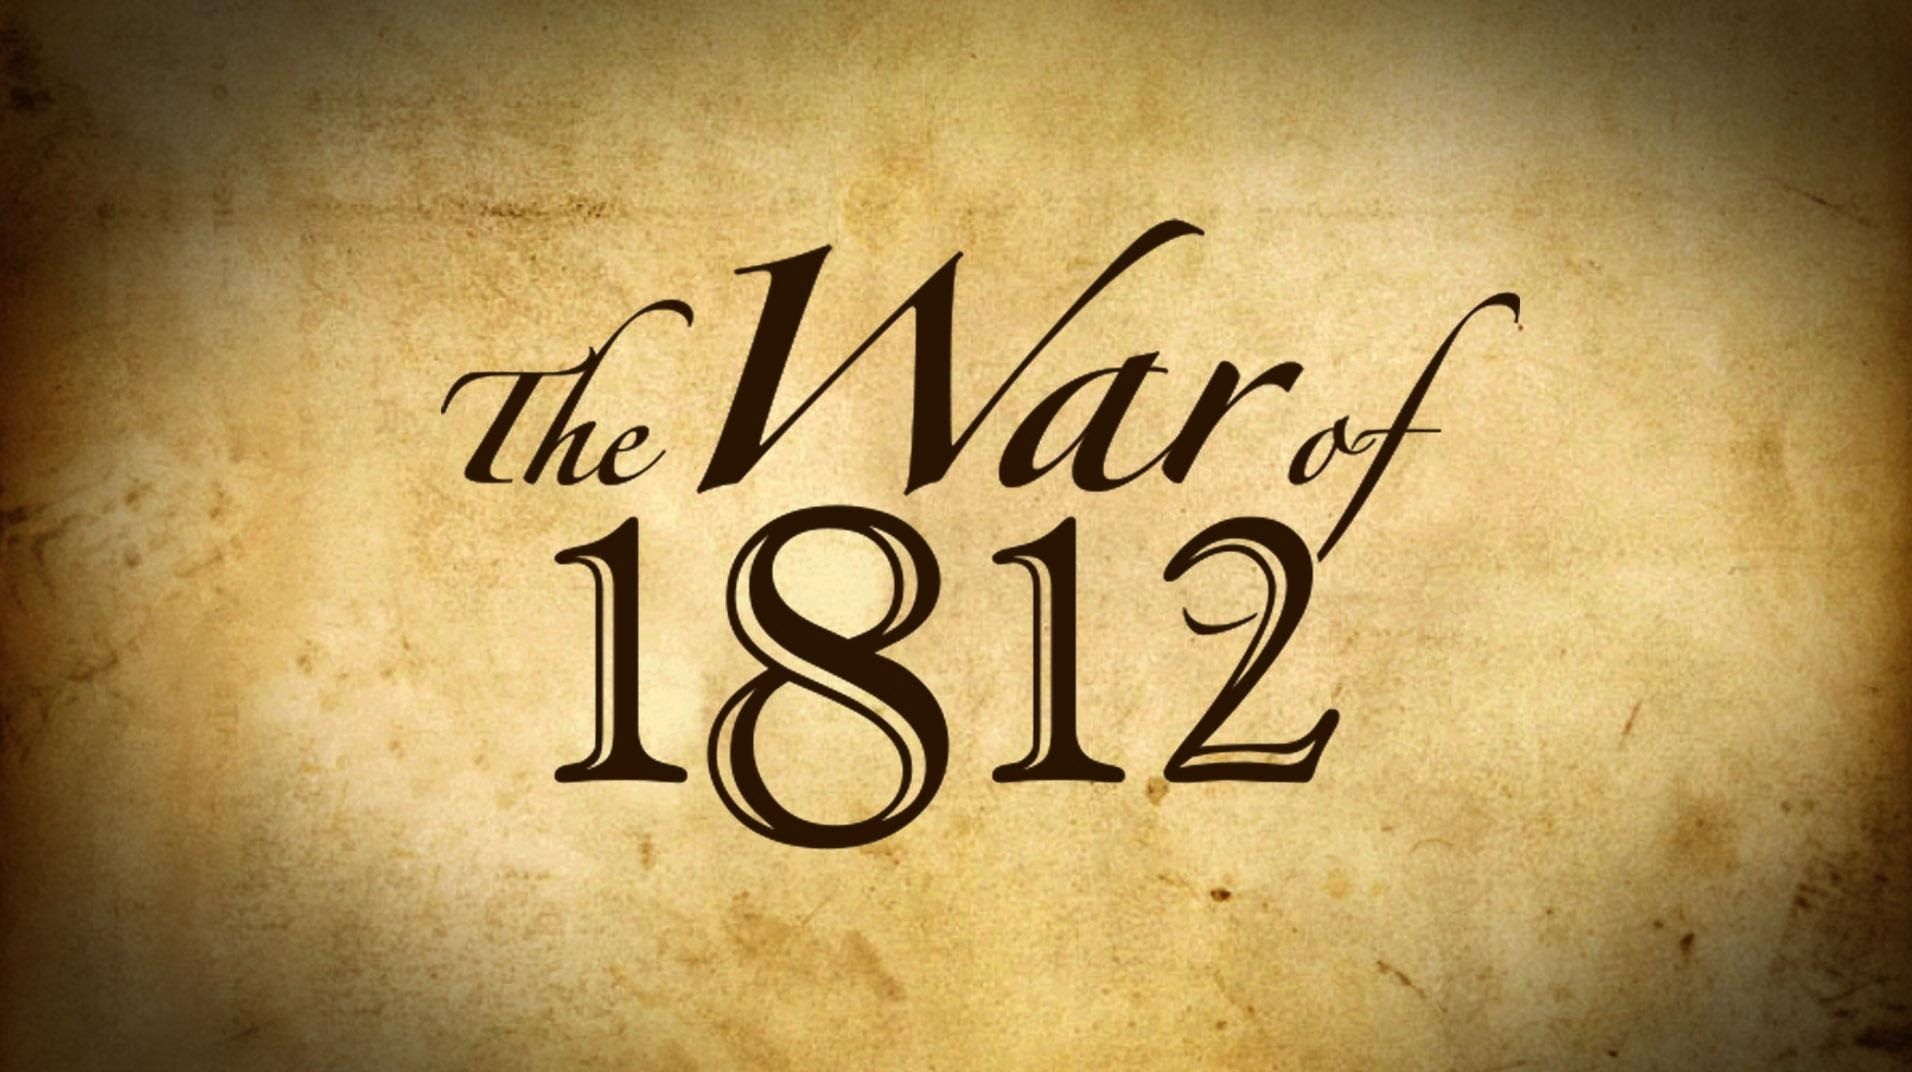 The Great Britain adopted The War of 1812